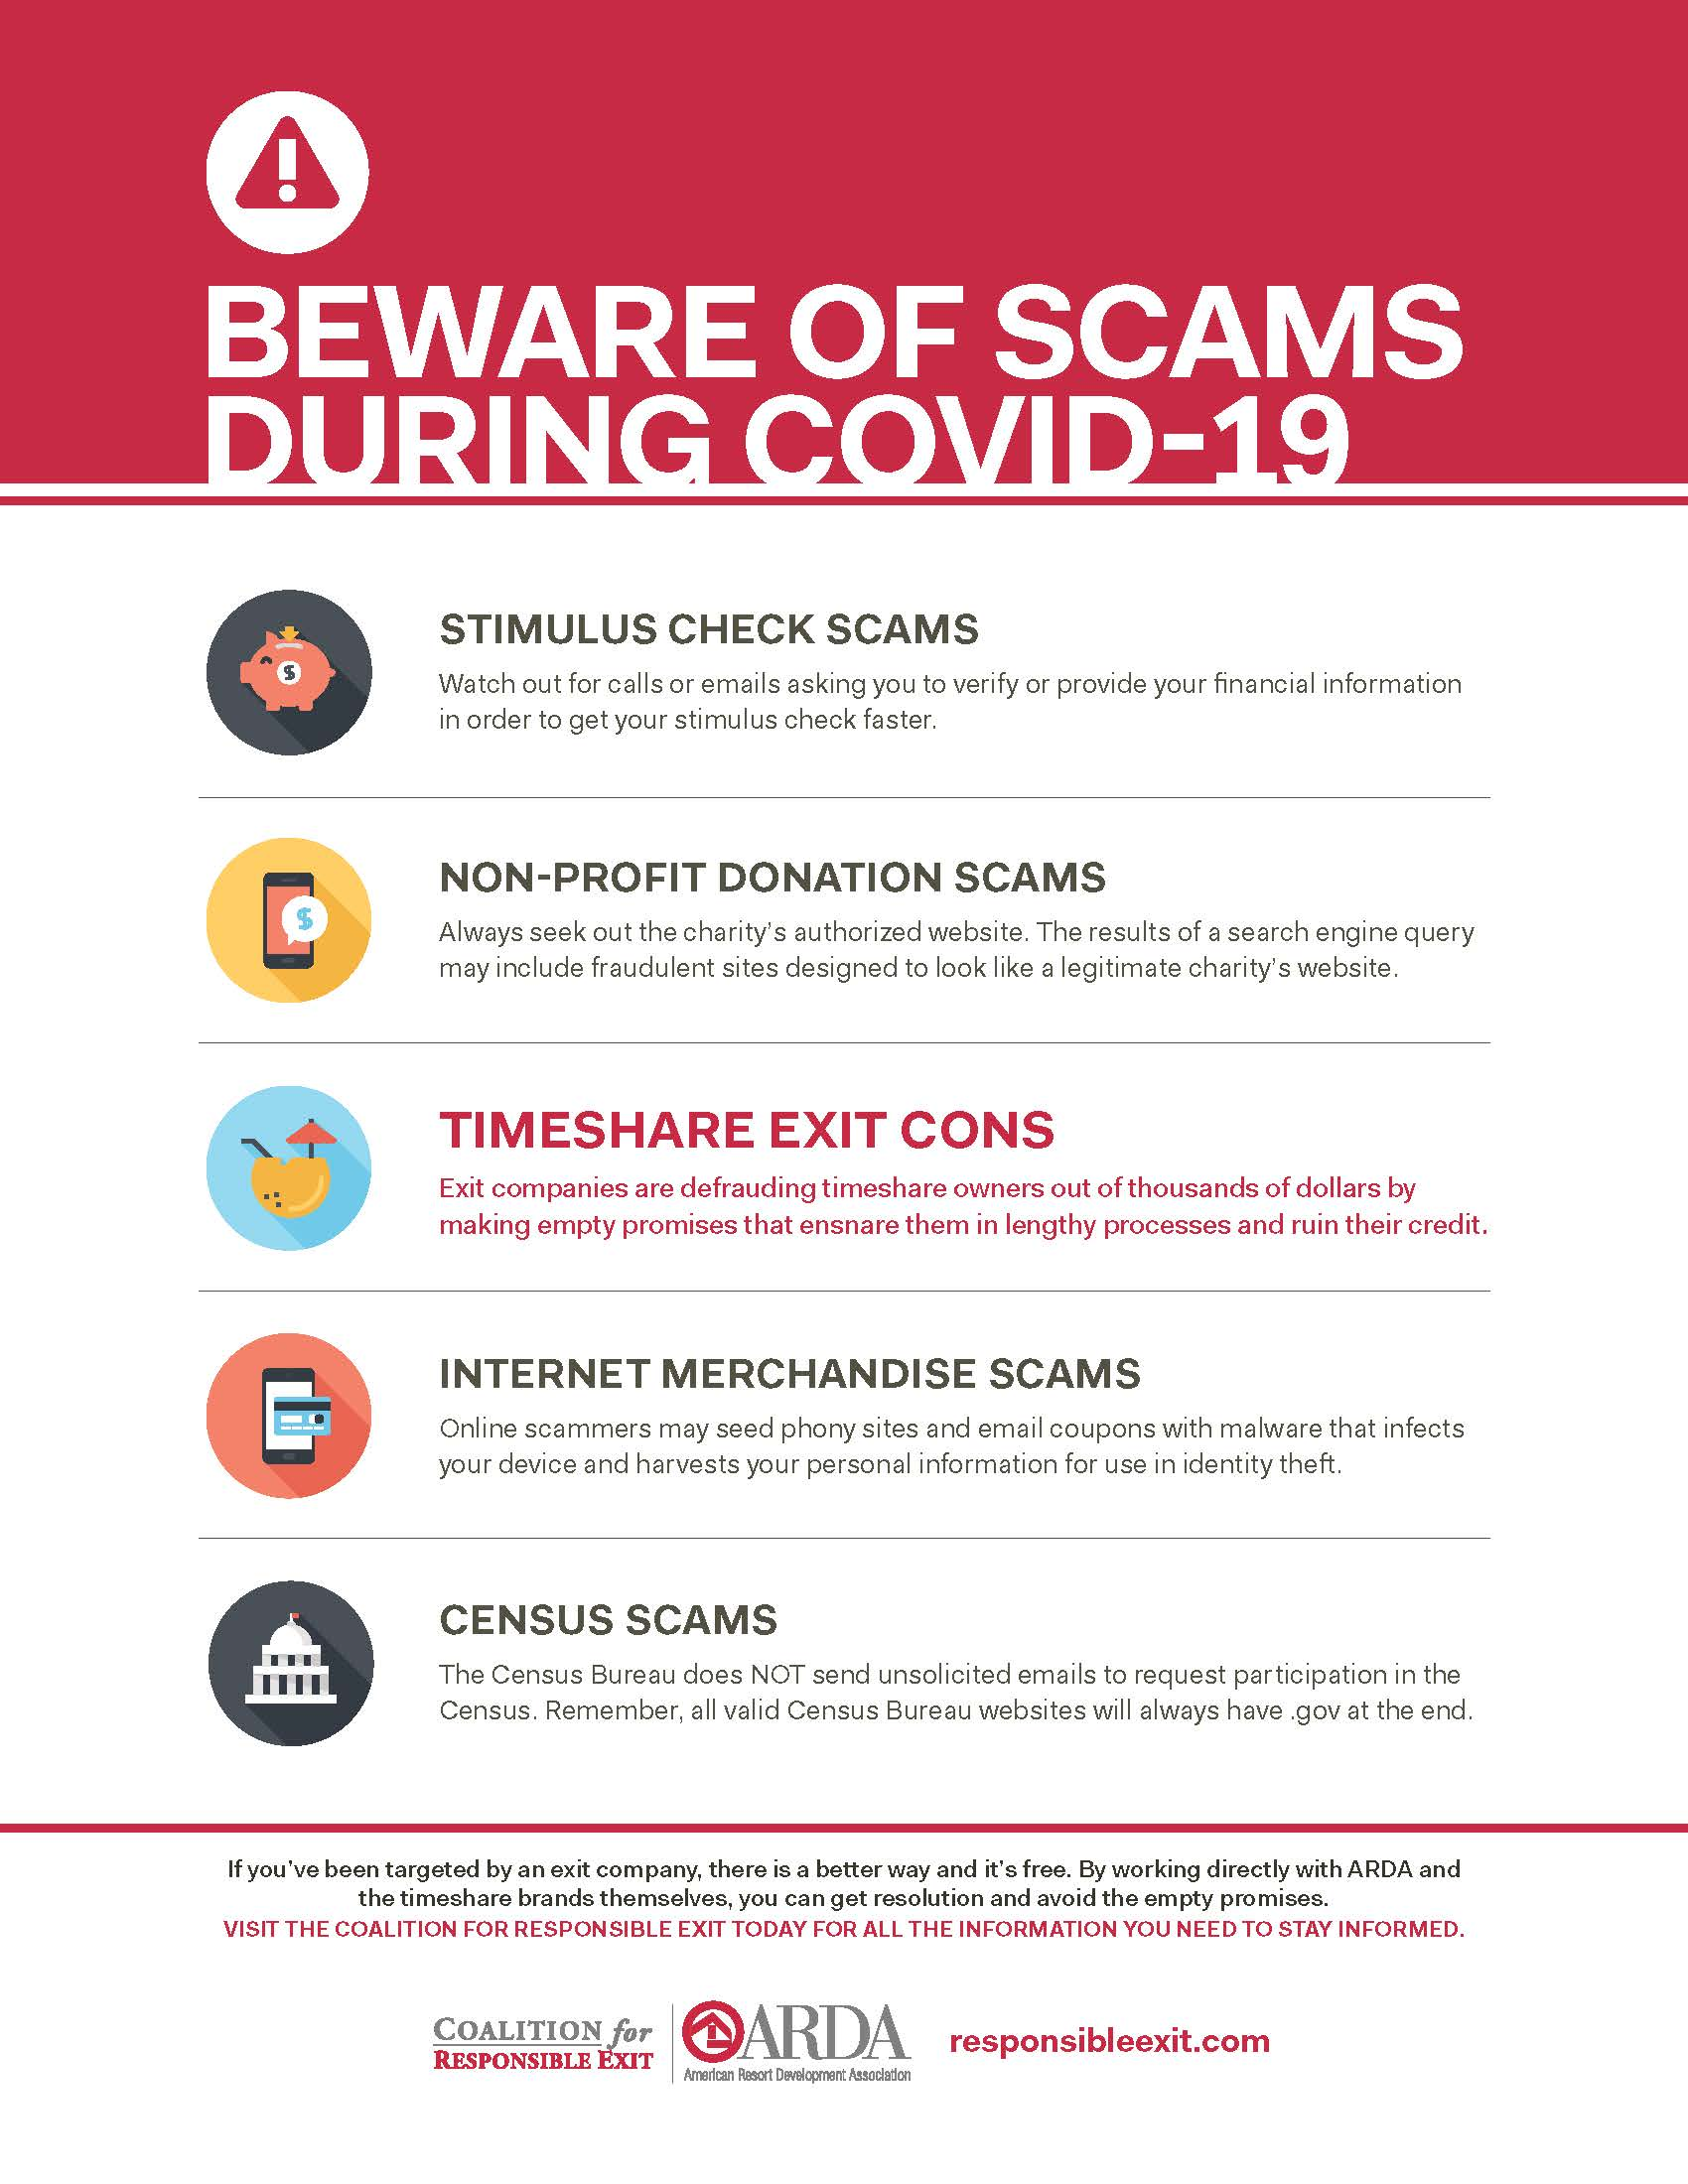 Beware of Scams During COVID-19 Infographic